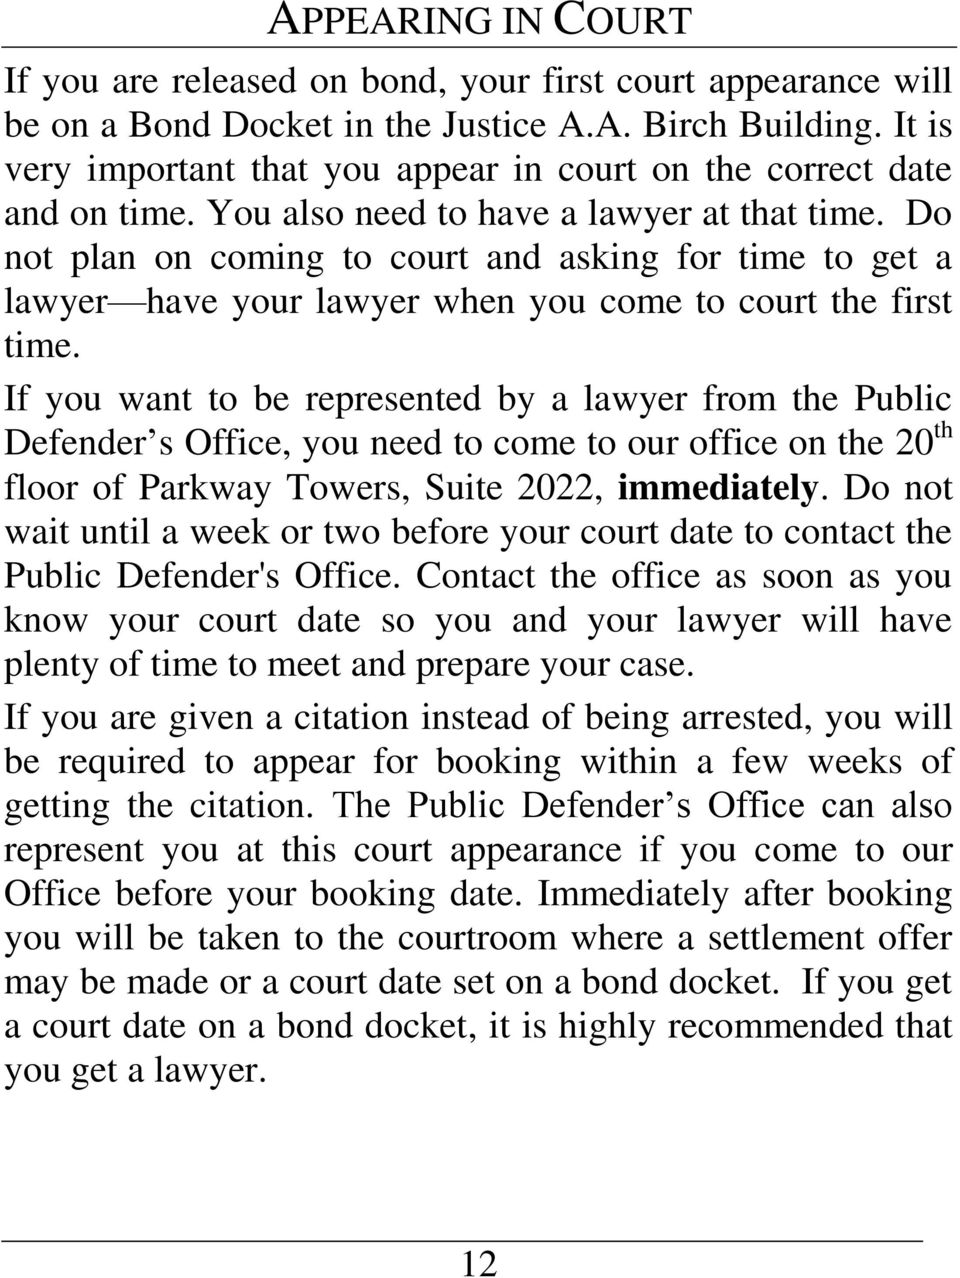 Do not plan on coming to court and asking for time to get a lawyer have your lawyer when you come to court the first time.